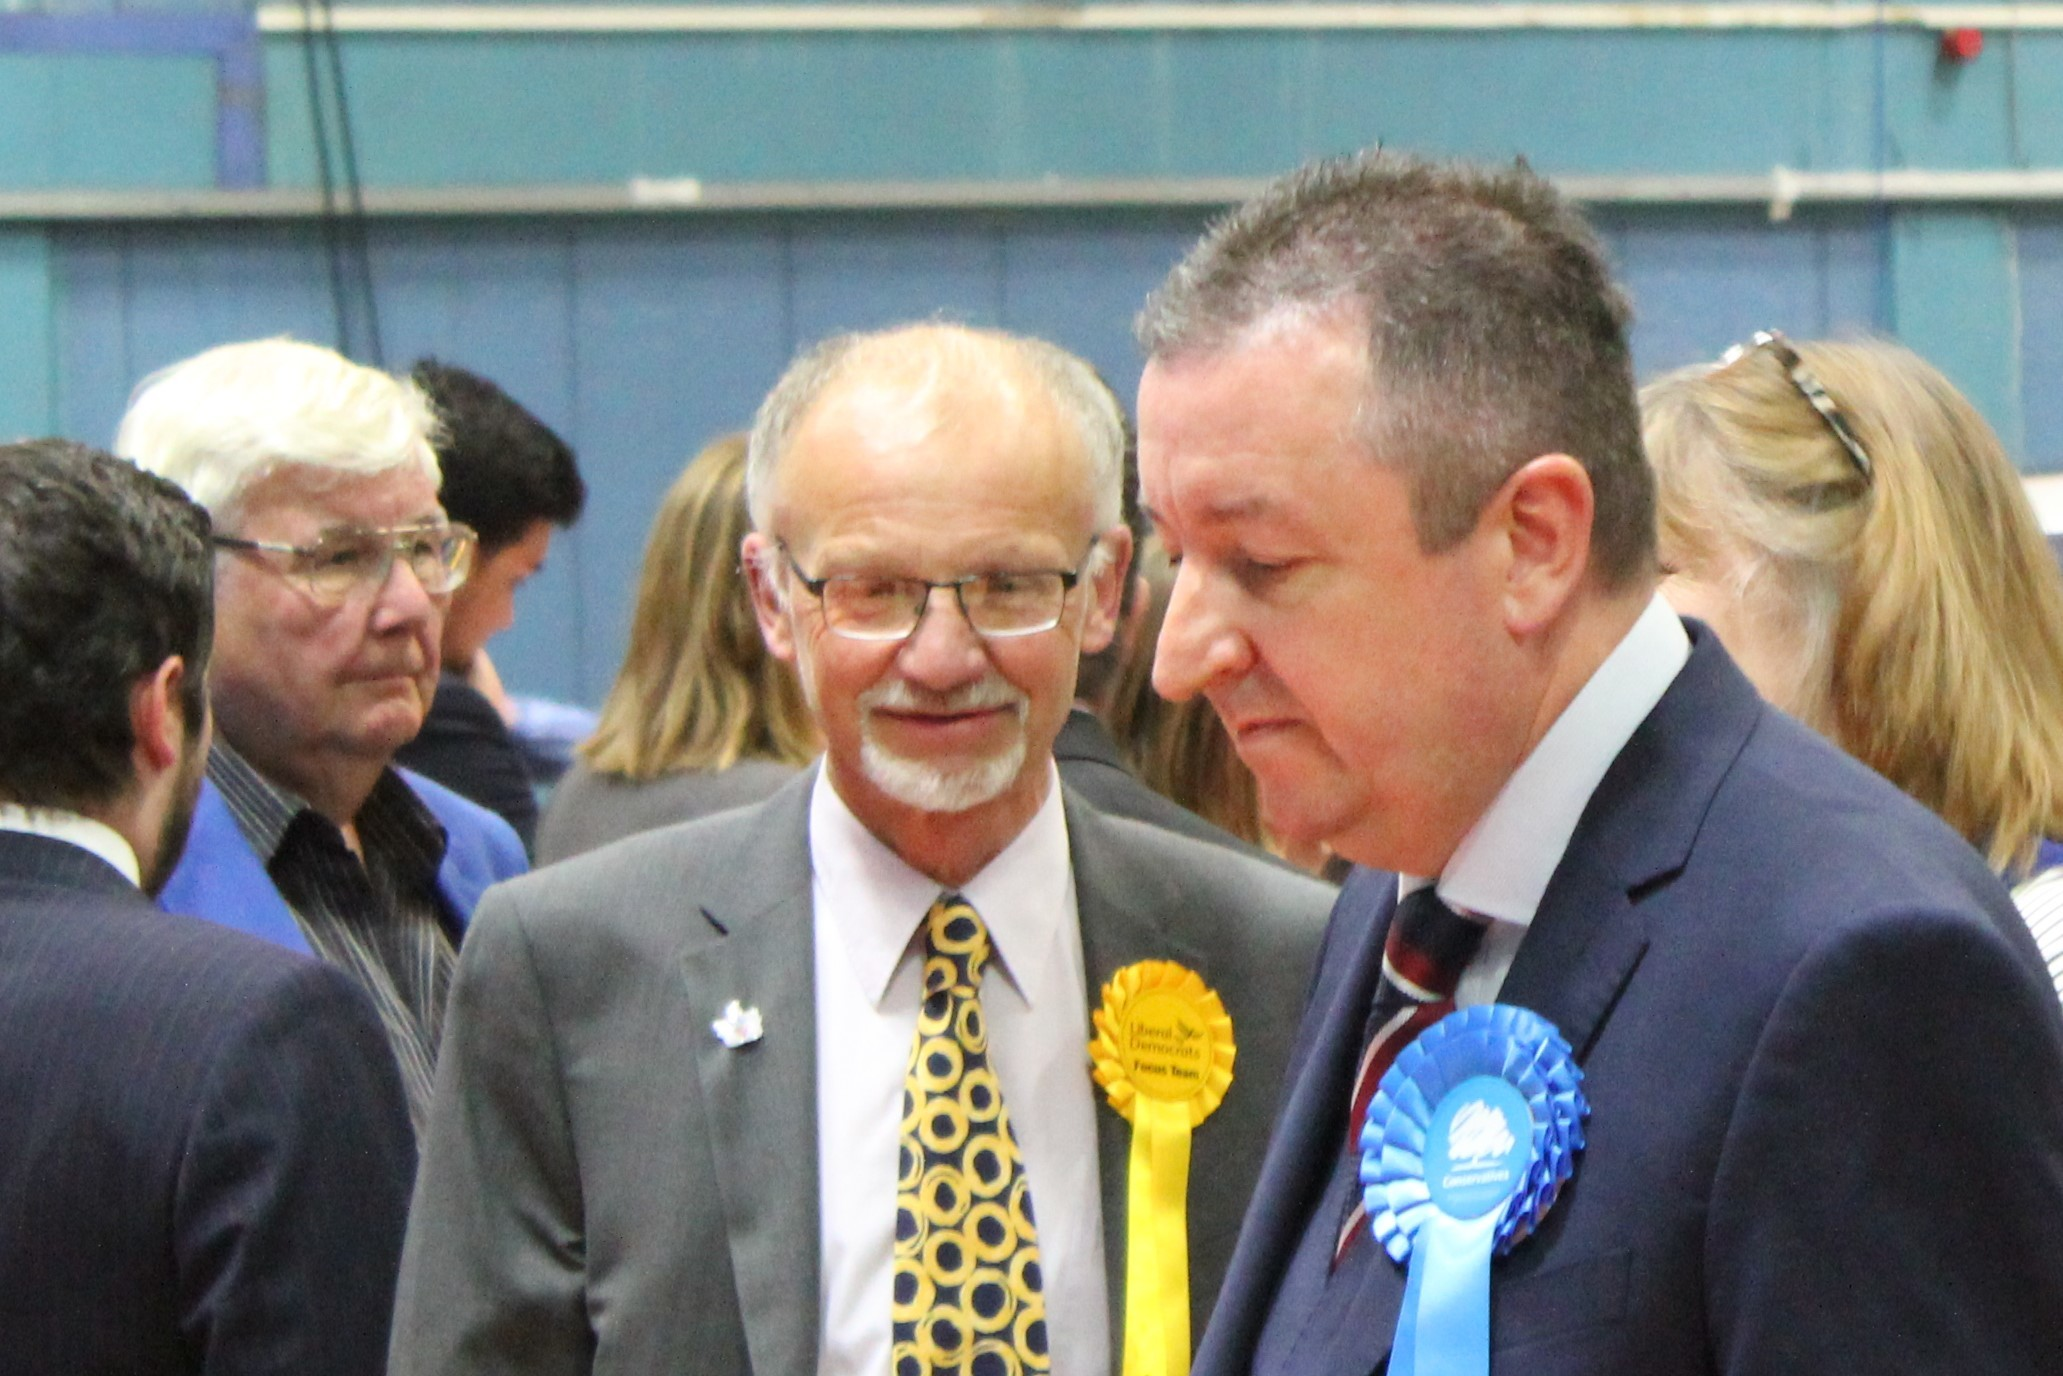 Stan Pajak (centre) at the election count 2019 flanked by Conservatives Brian Ford and Gary Sumner